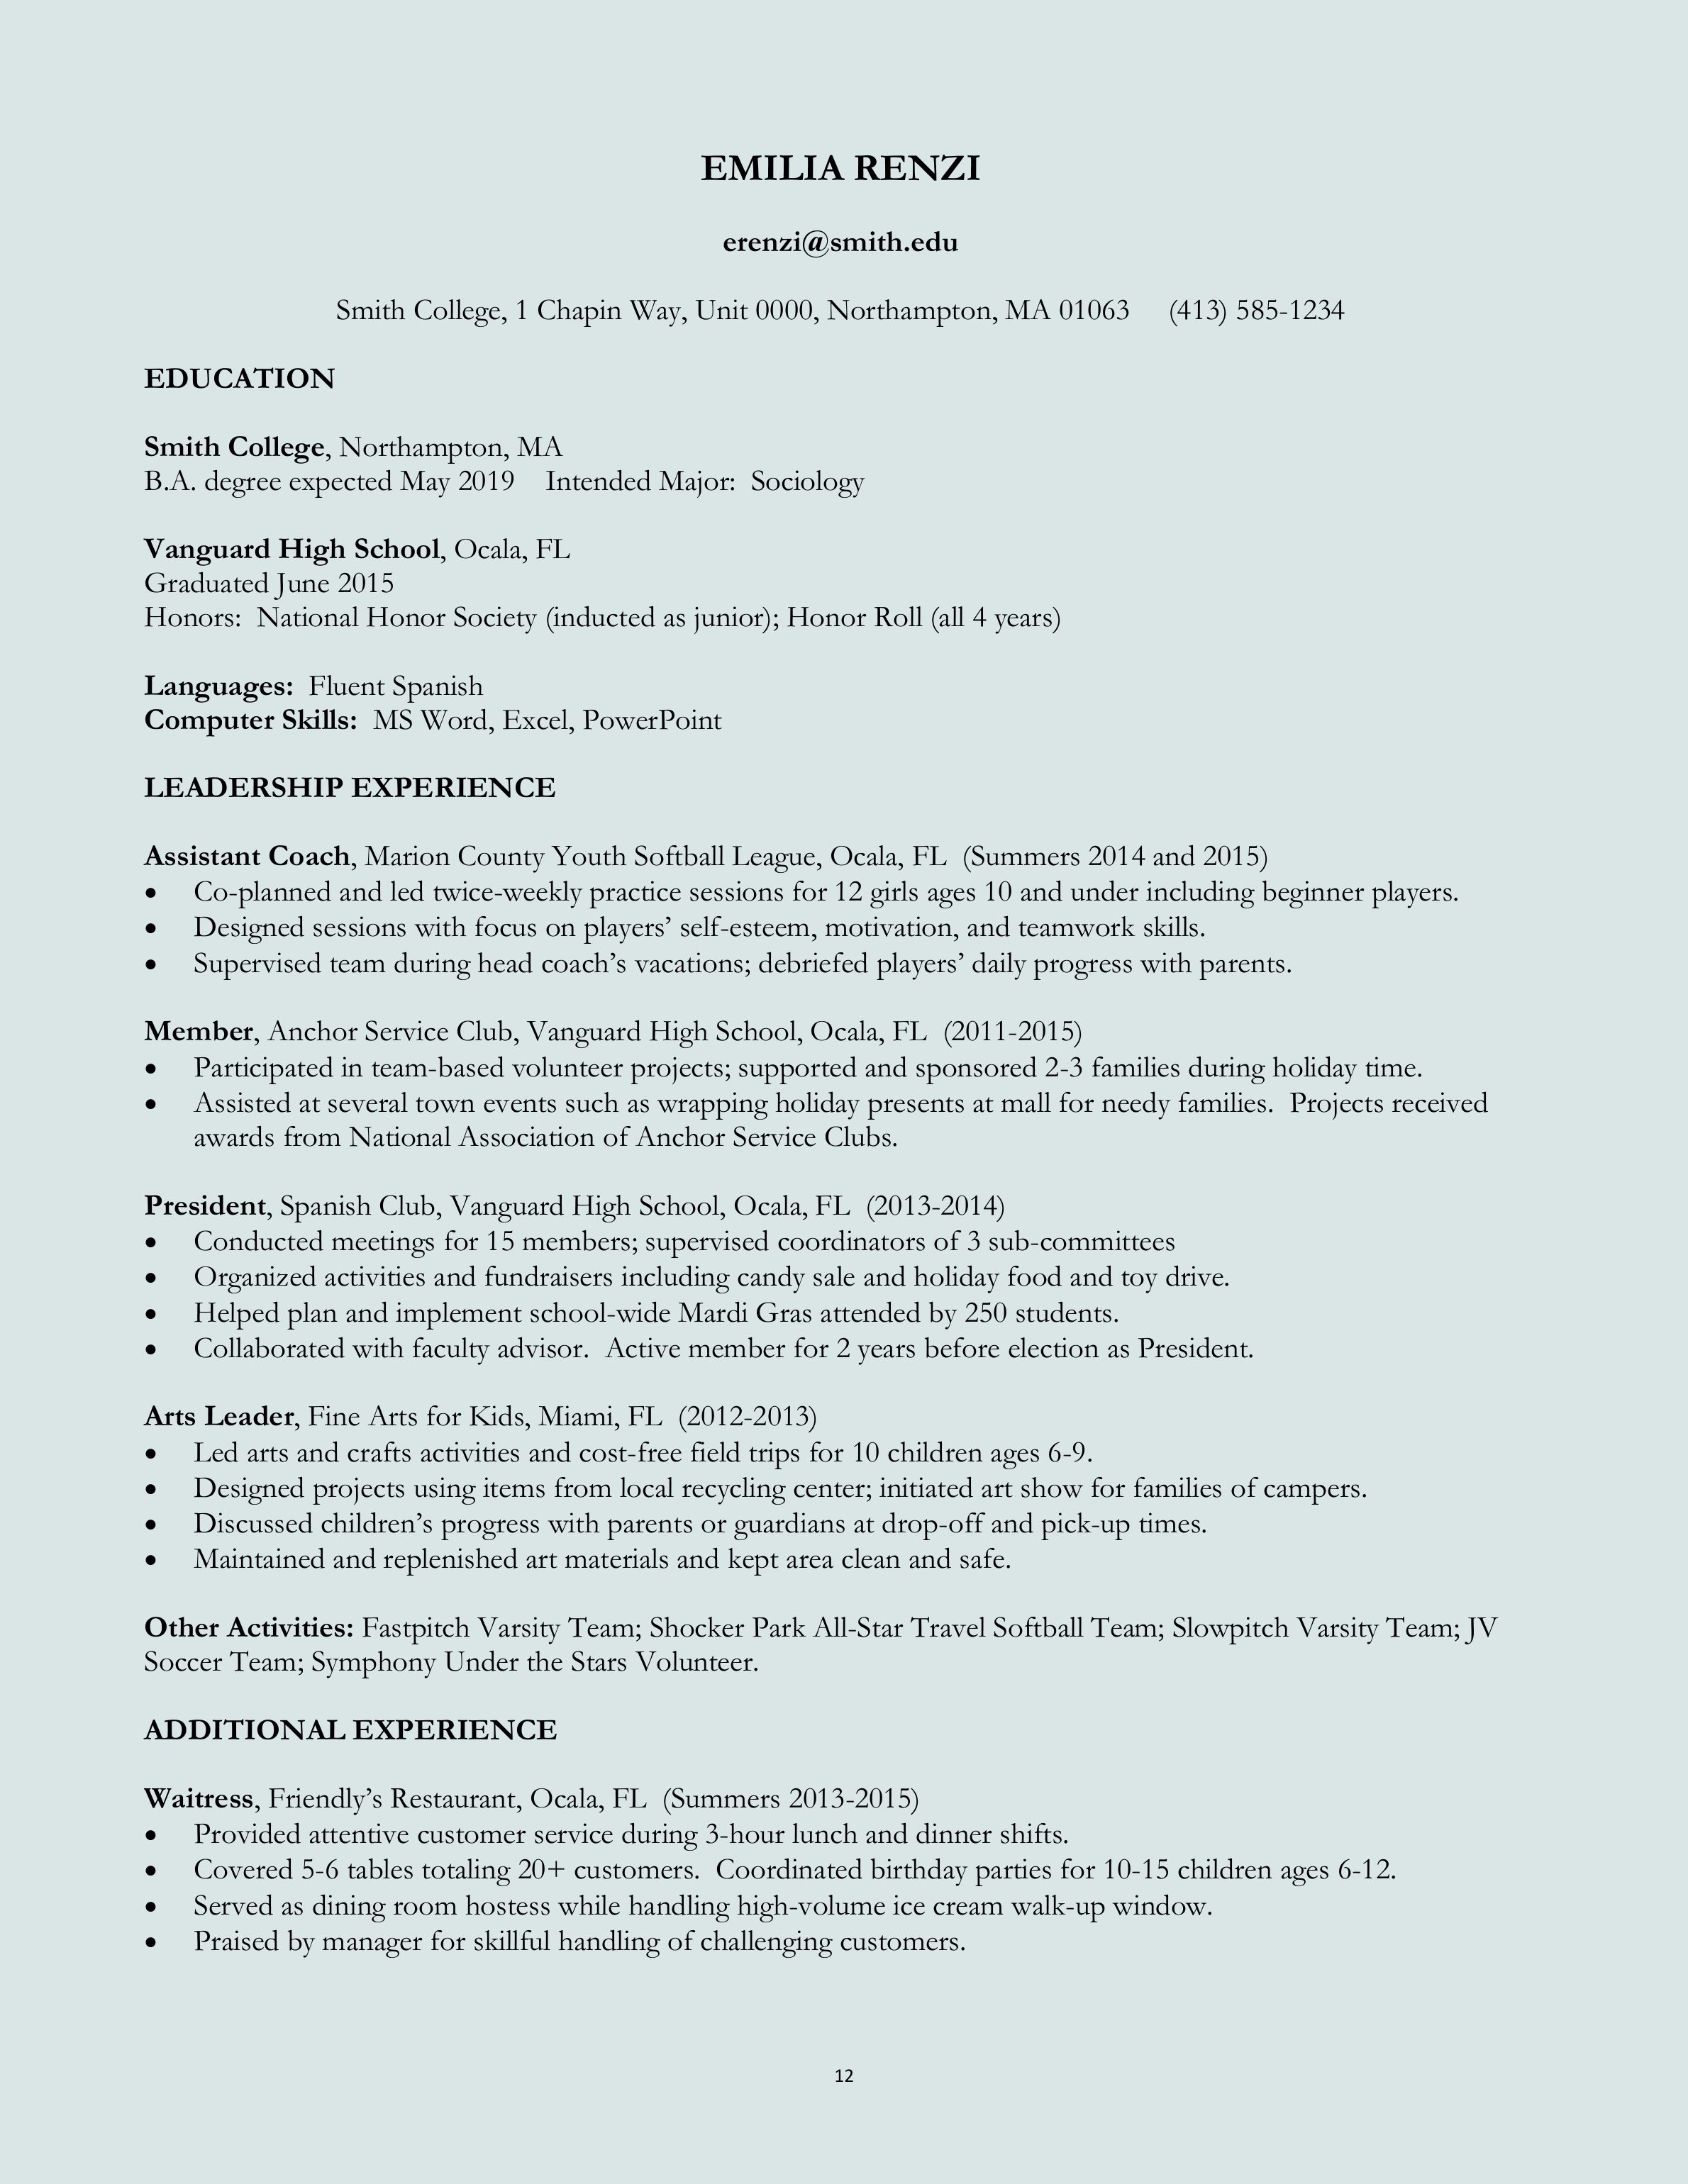 download resume format amp write the best resume regarding good resume format